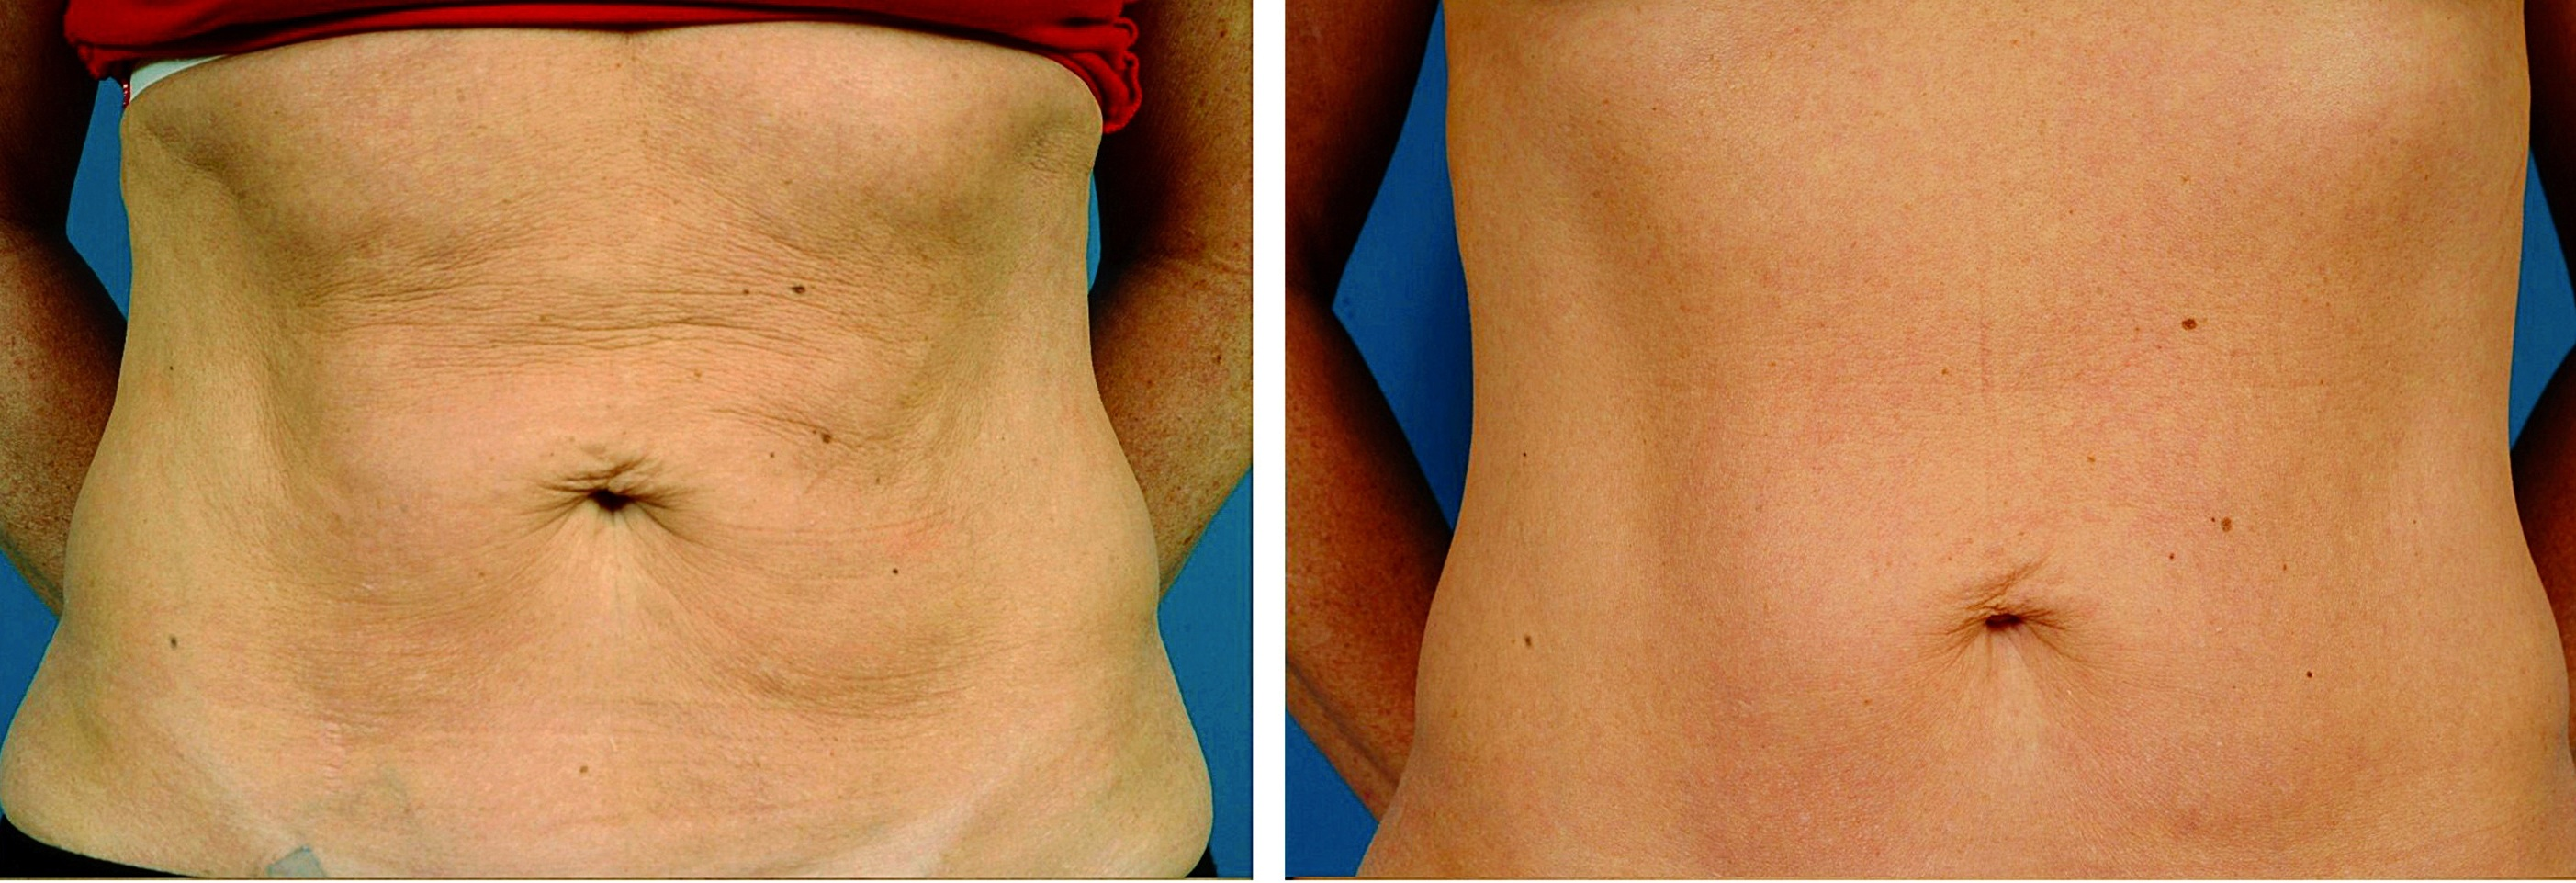 Lipocontour Body Shaping With Low Level Laser Light Is The